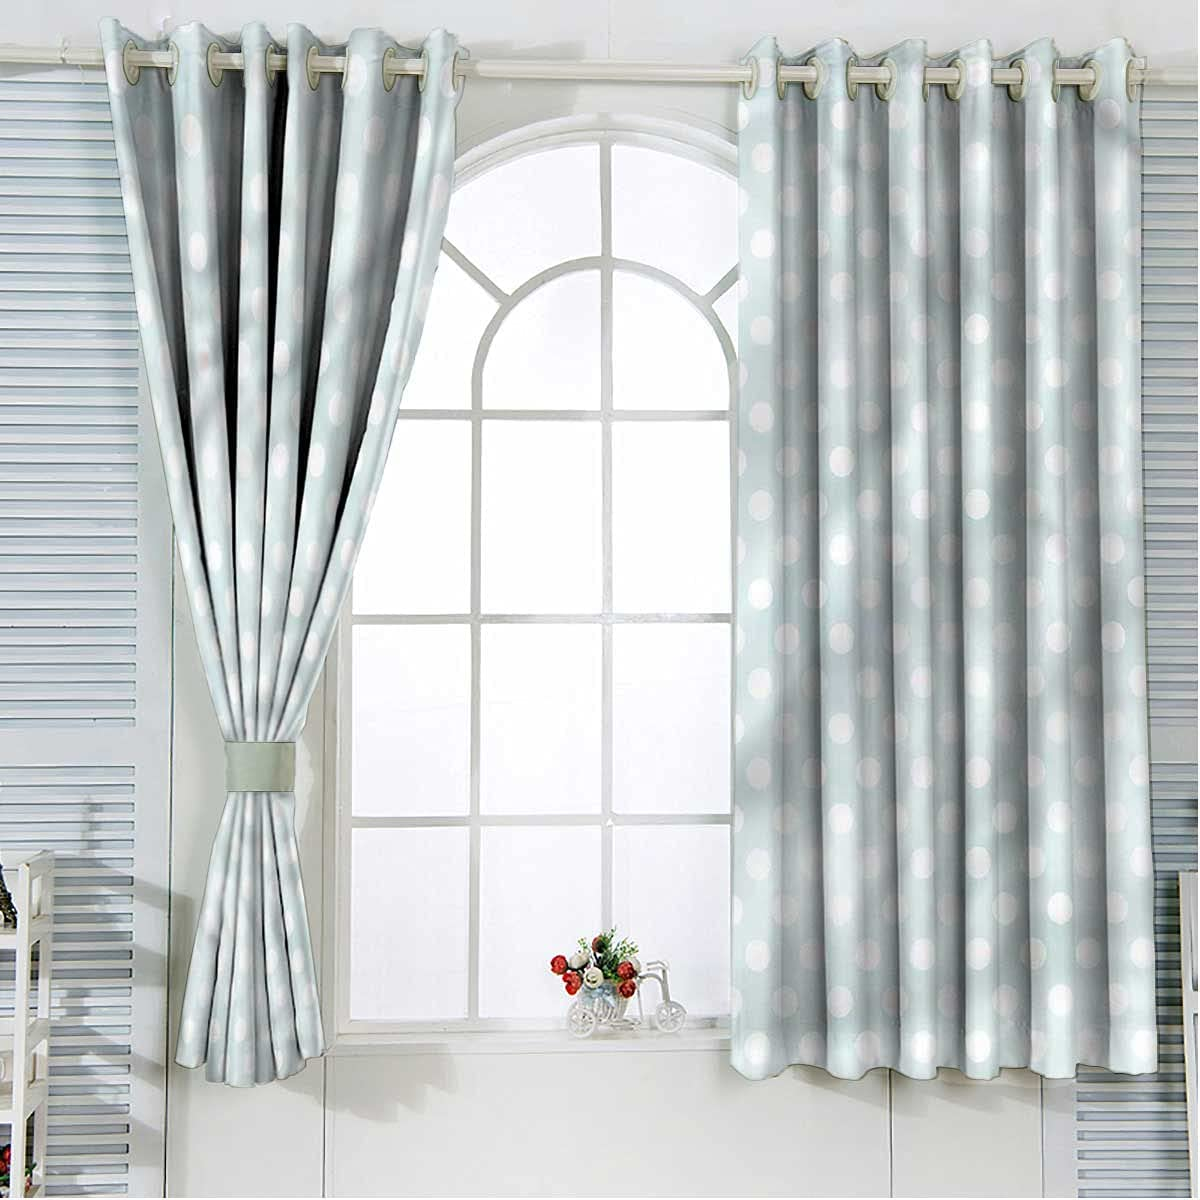 Pale Outlet ☆ Free Shipping Blue Blackout Curtain Panels Selling 2 84 Retro Inch Sty Length Set